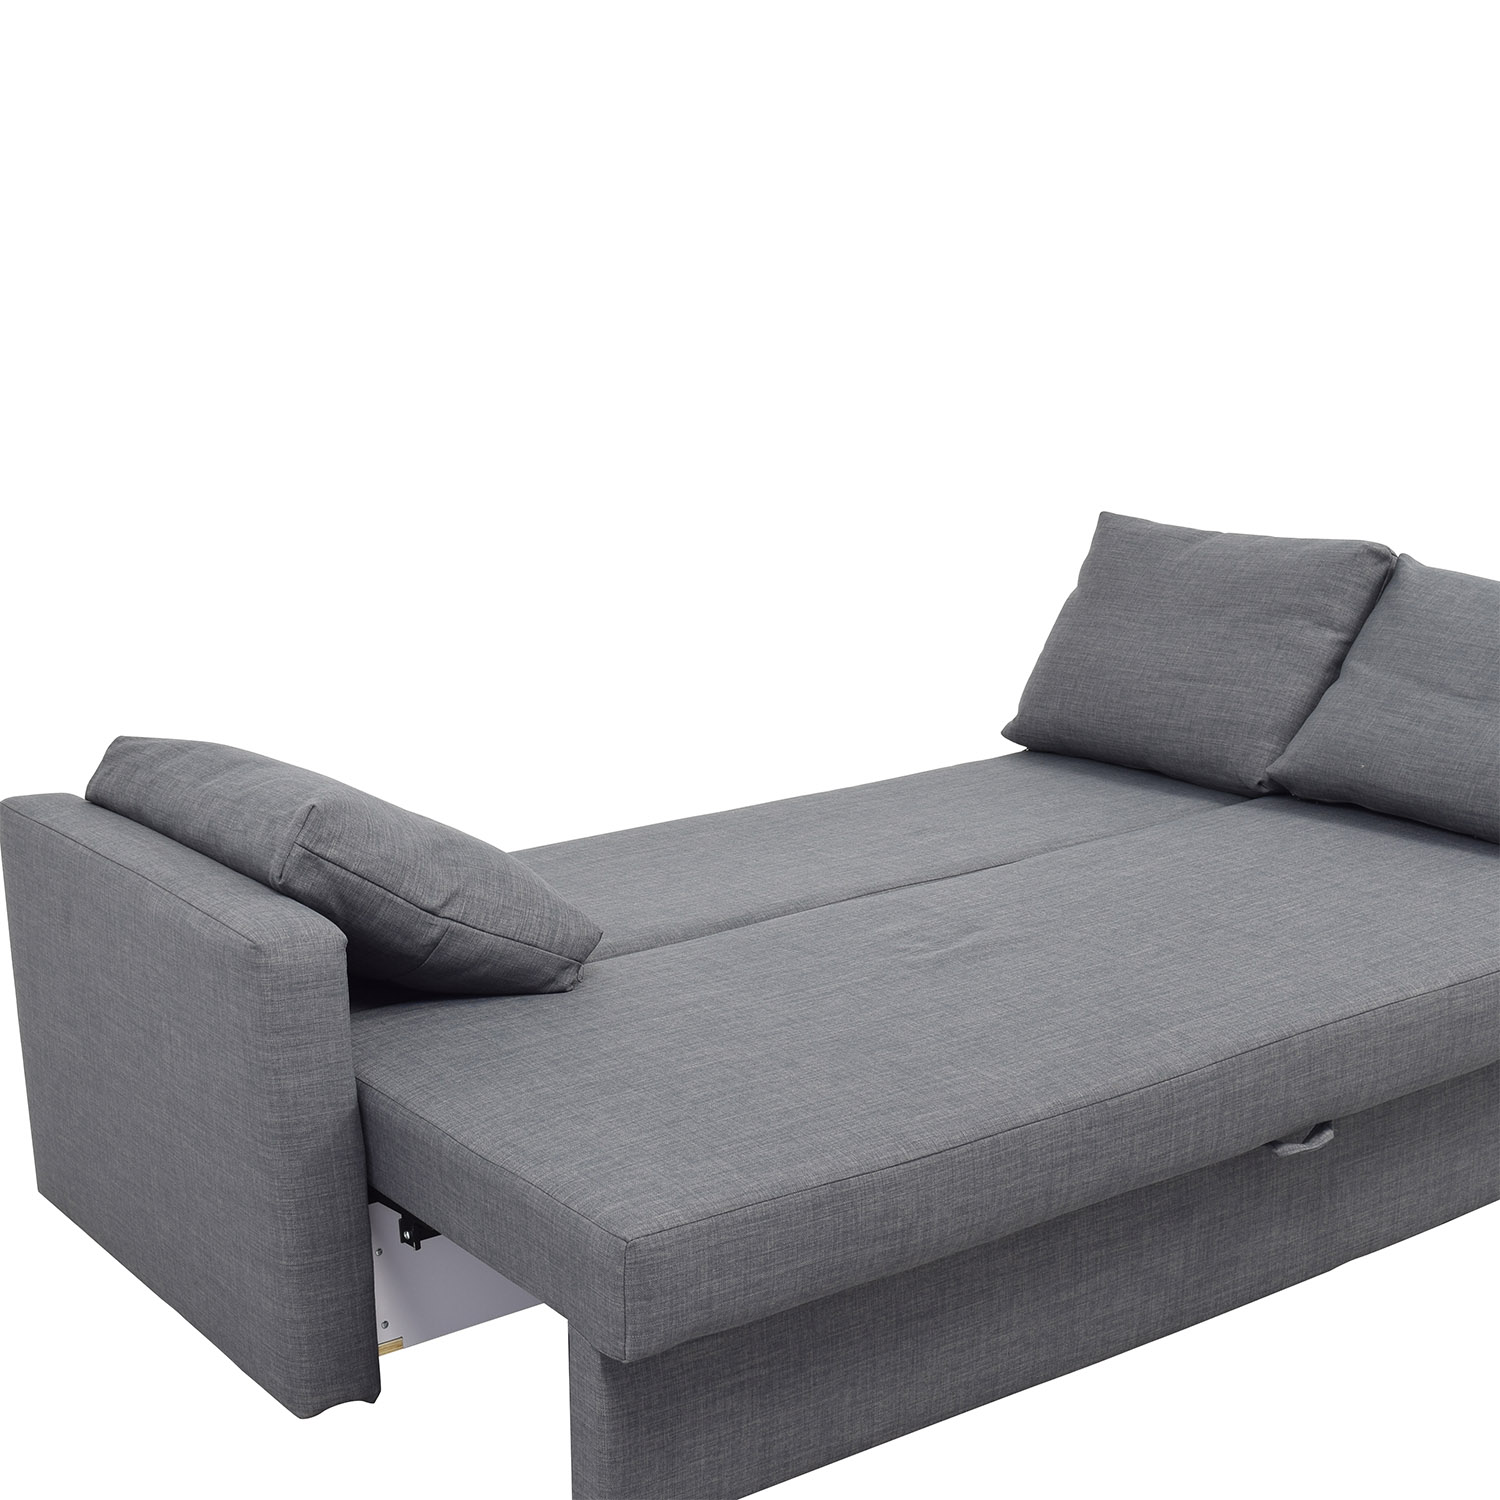 Amazing 32 Off Ikea Ikea Friheten Grey Sleeper Sofa Sofas Bralicious Painted Fabric Chair Ideas Braliciousco